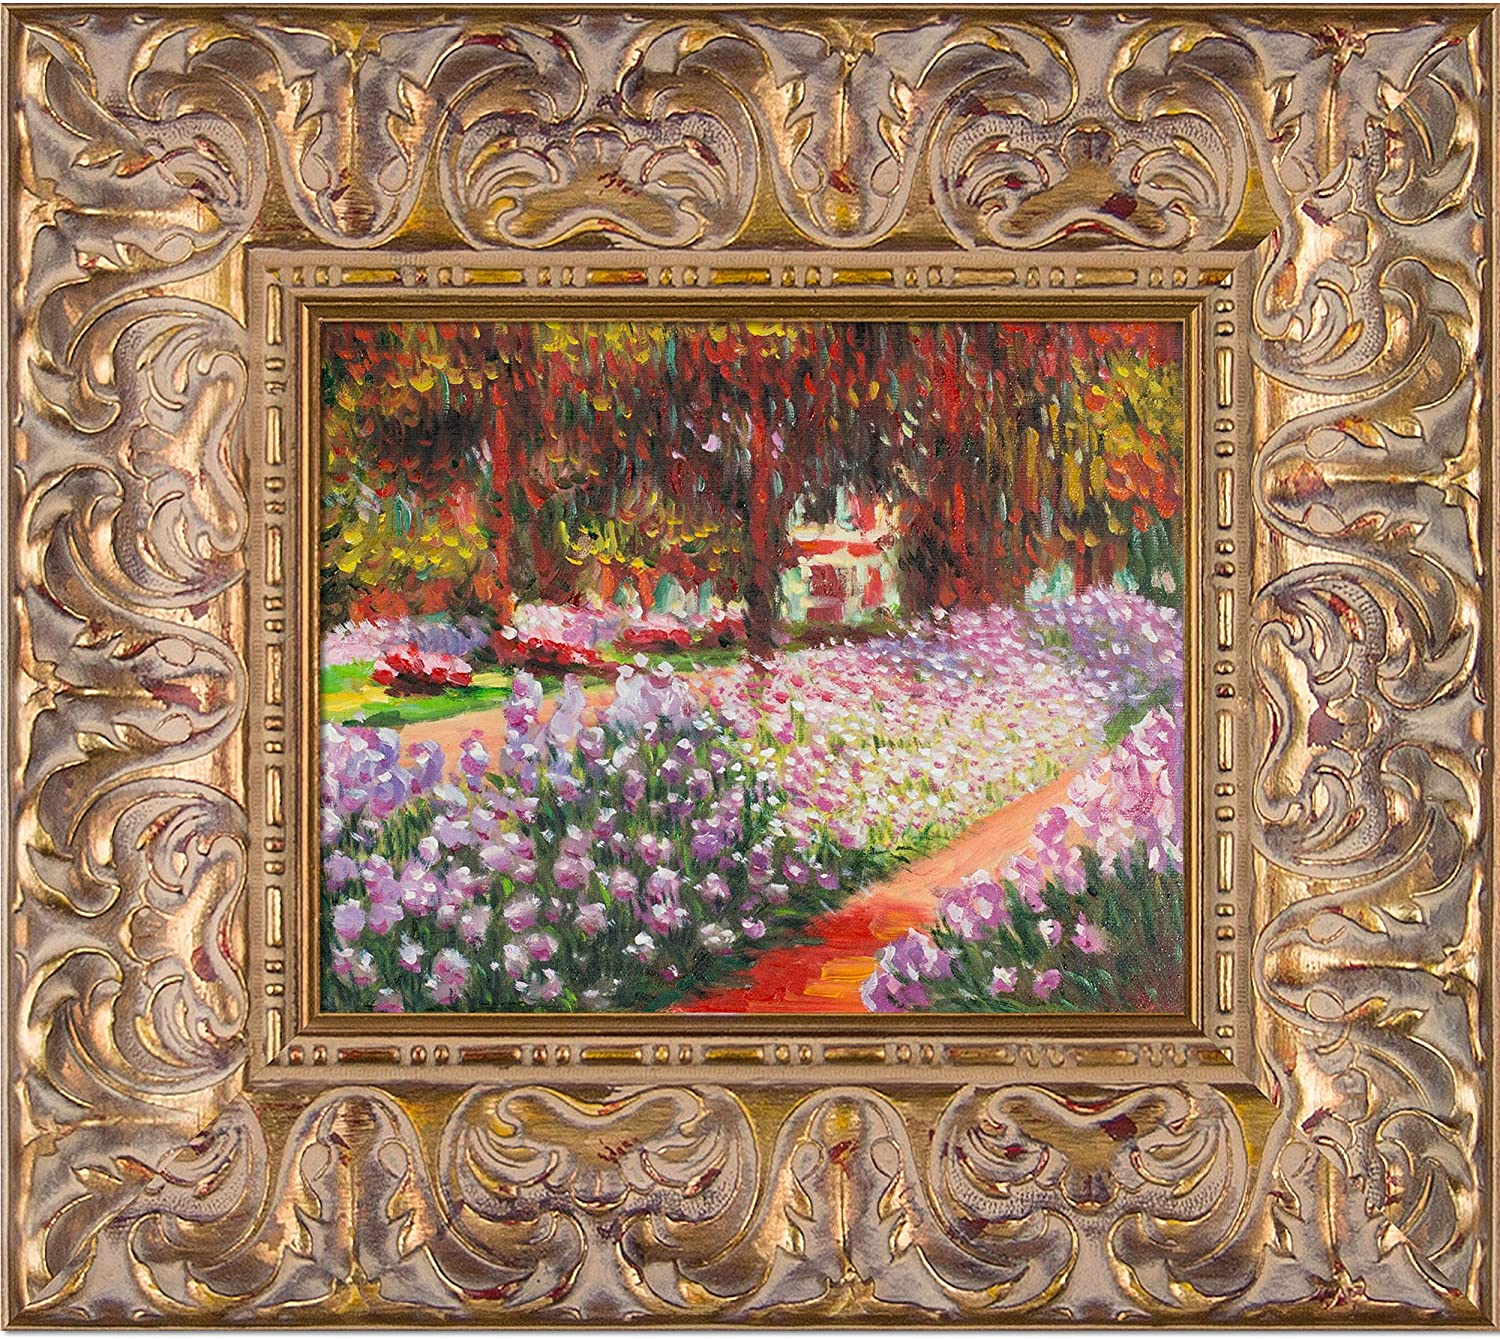 La Pastiche overstockArt Artist's Garden at Giverny by Claude Monet with Espana Gold Framed Artwork, MON2464-FR-93288X10